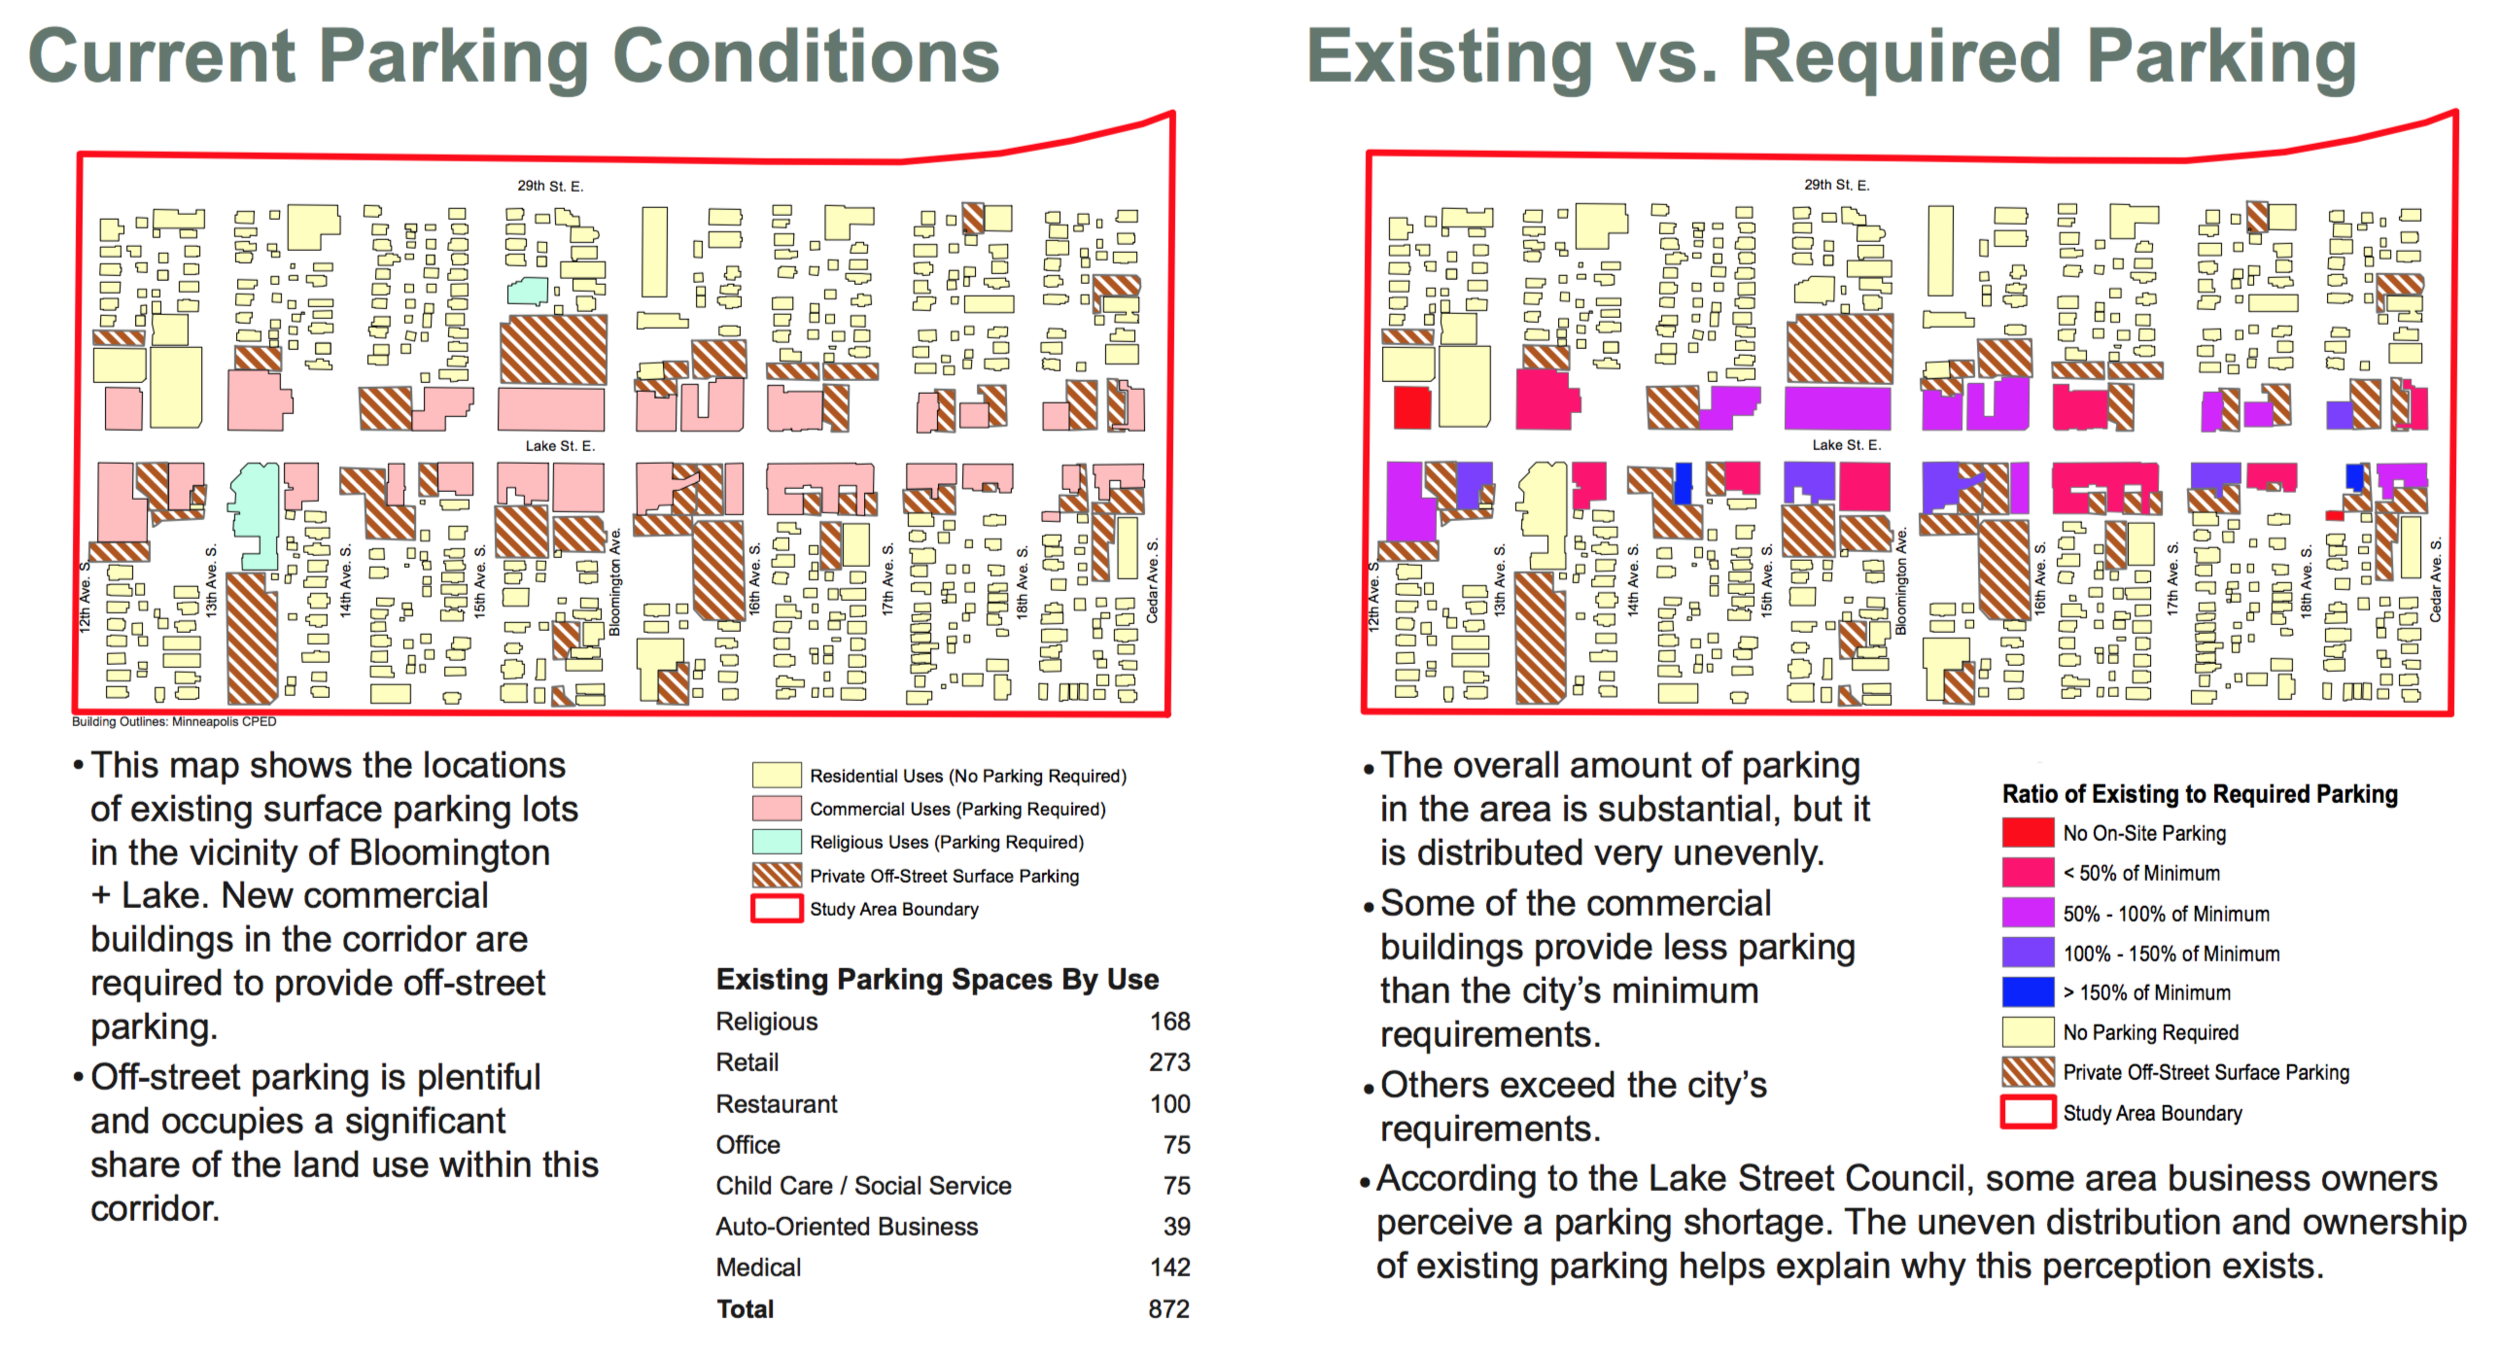 Data from manual count by walking survey conducted Fall 2015; may be outdated. Parking minimums were those in effect in Fall 2015. Click to view larger.